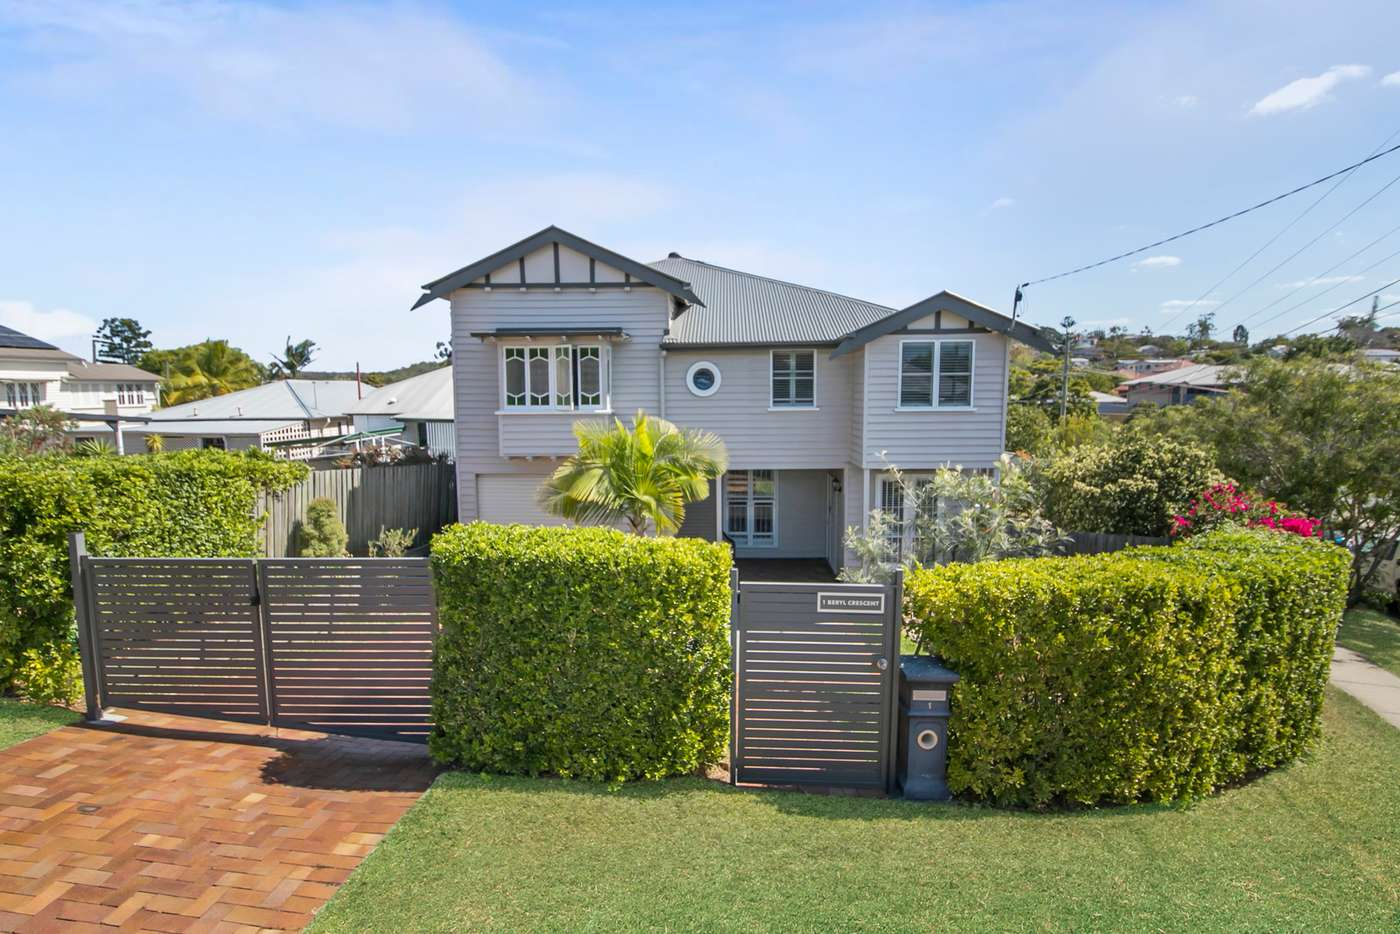 Main view of Homely house listing, 1 Beryl Crescent, Holland Park QLD 4121